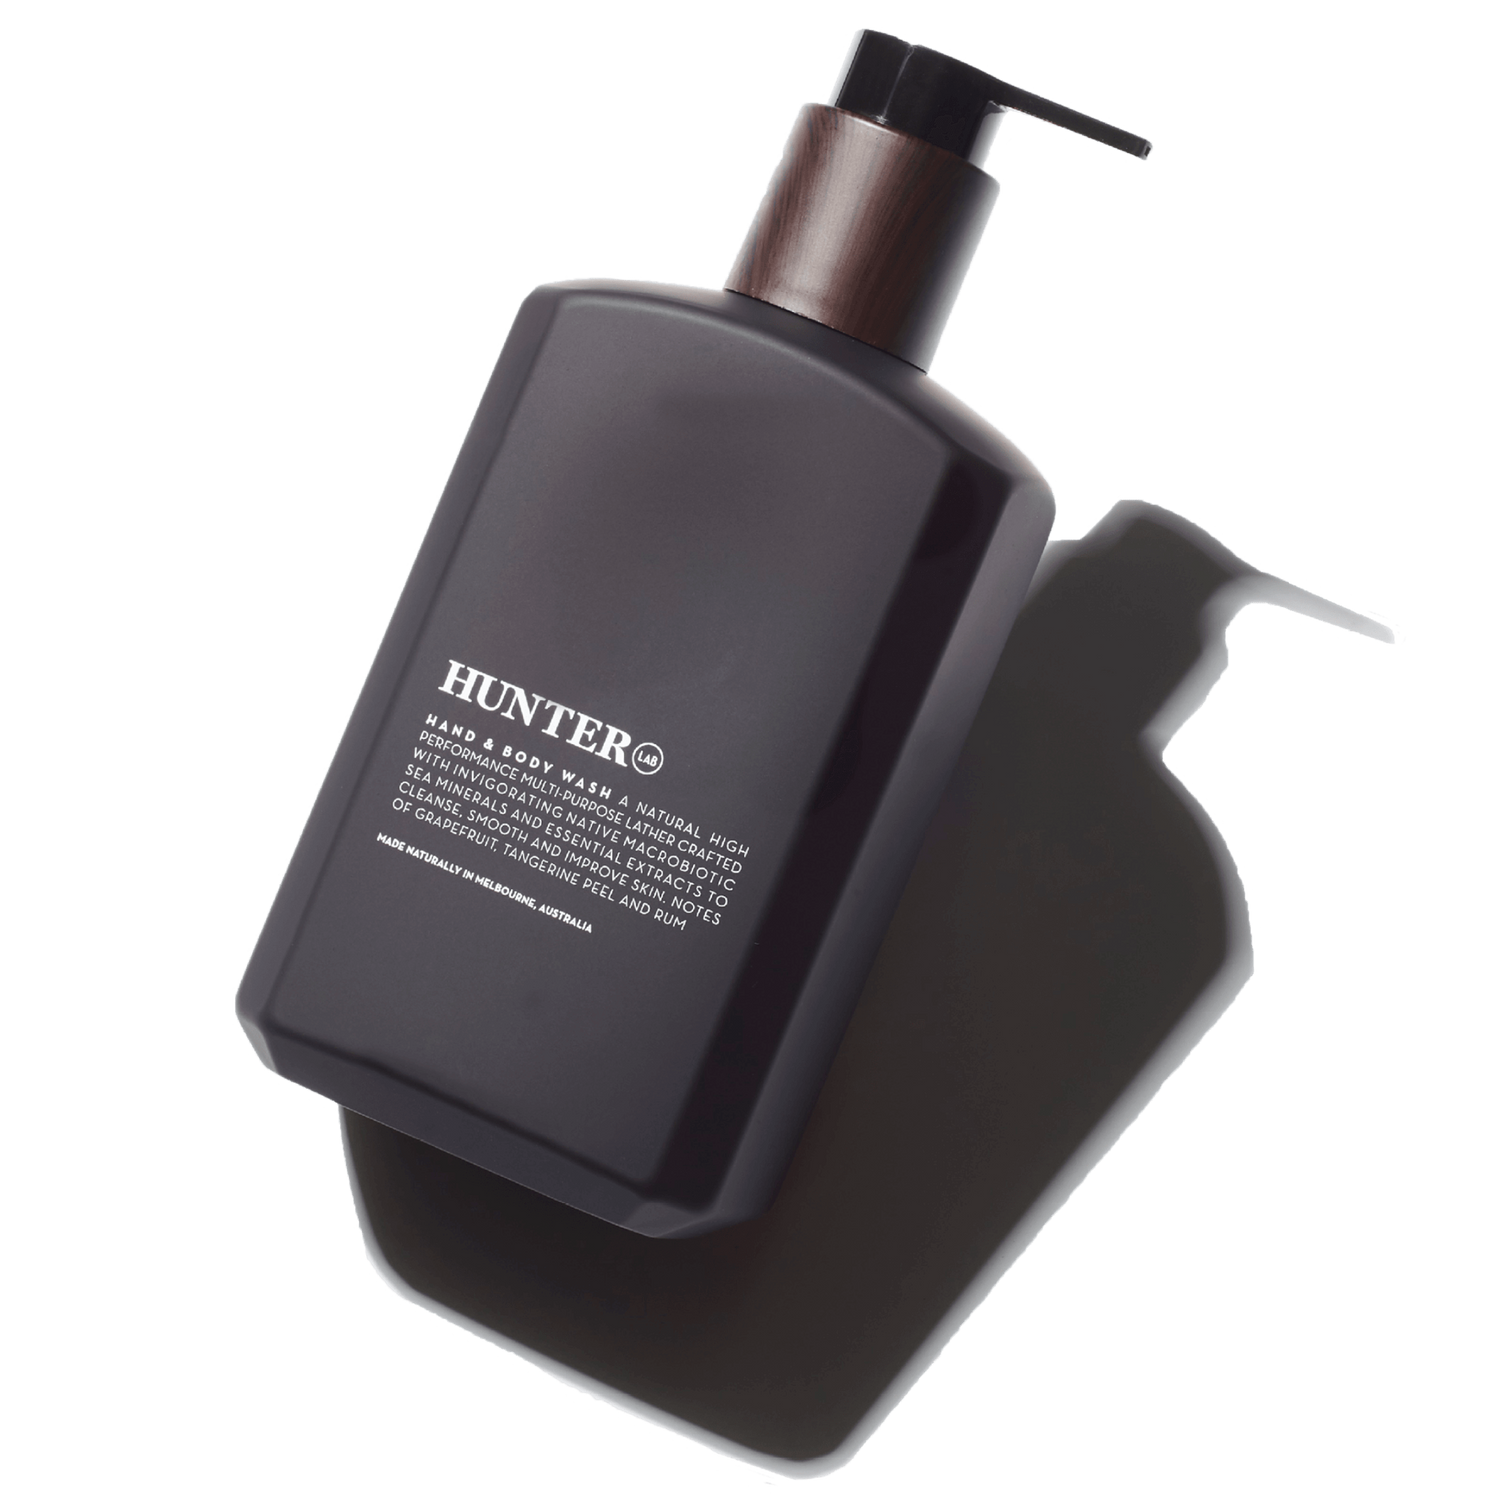 Hunter Lab Body Care